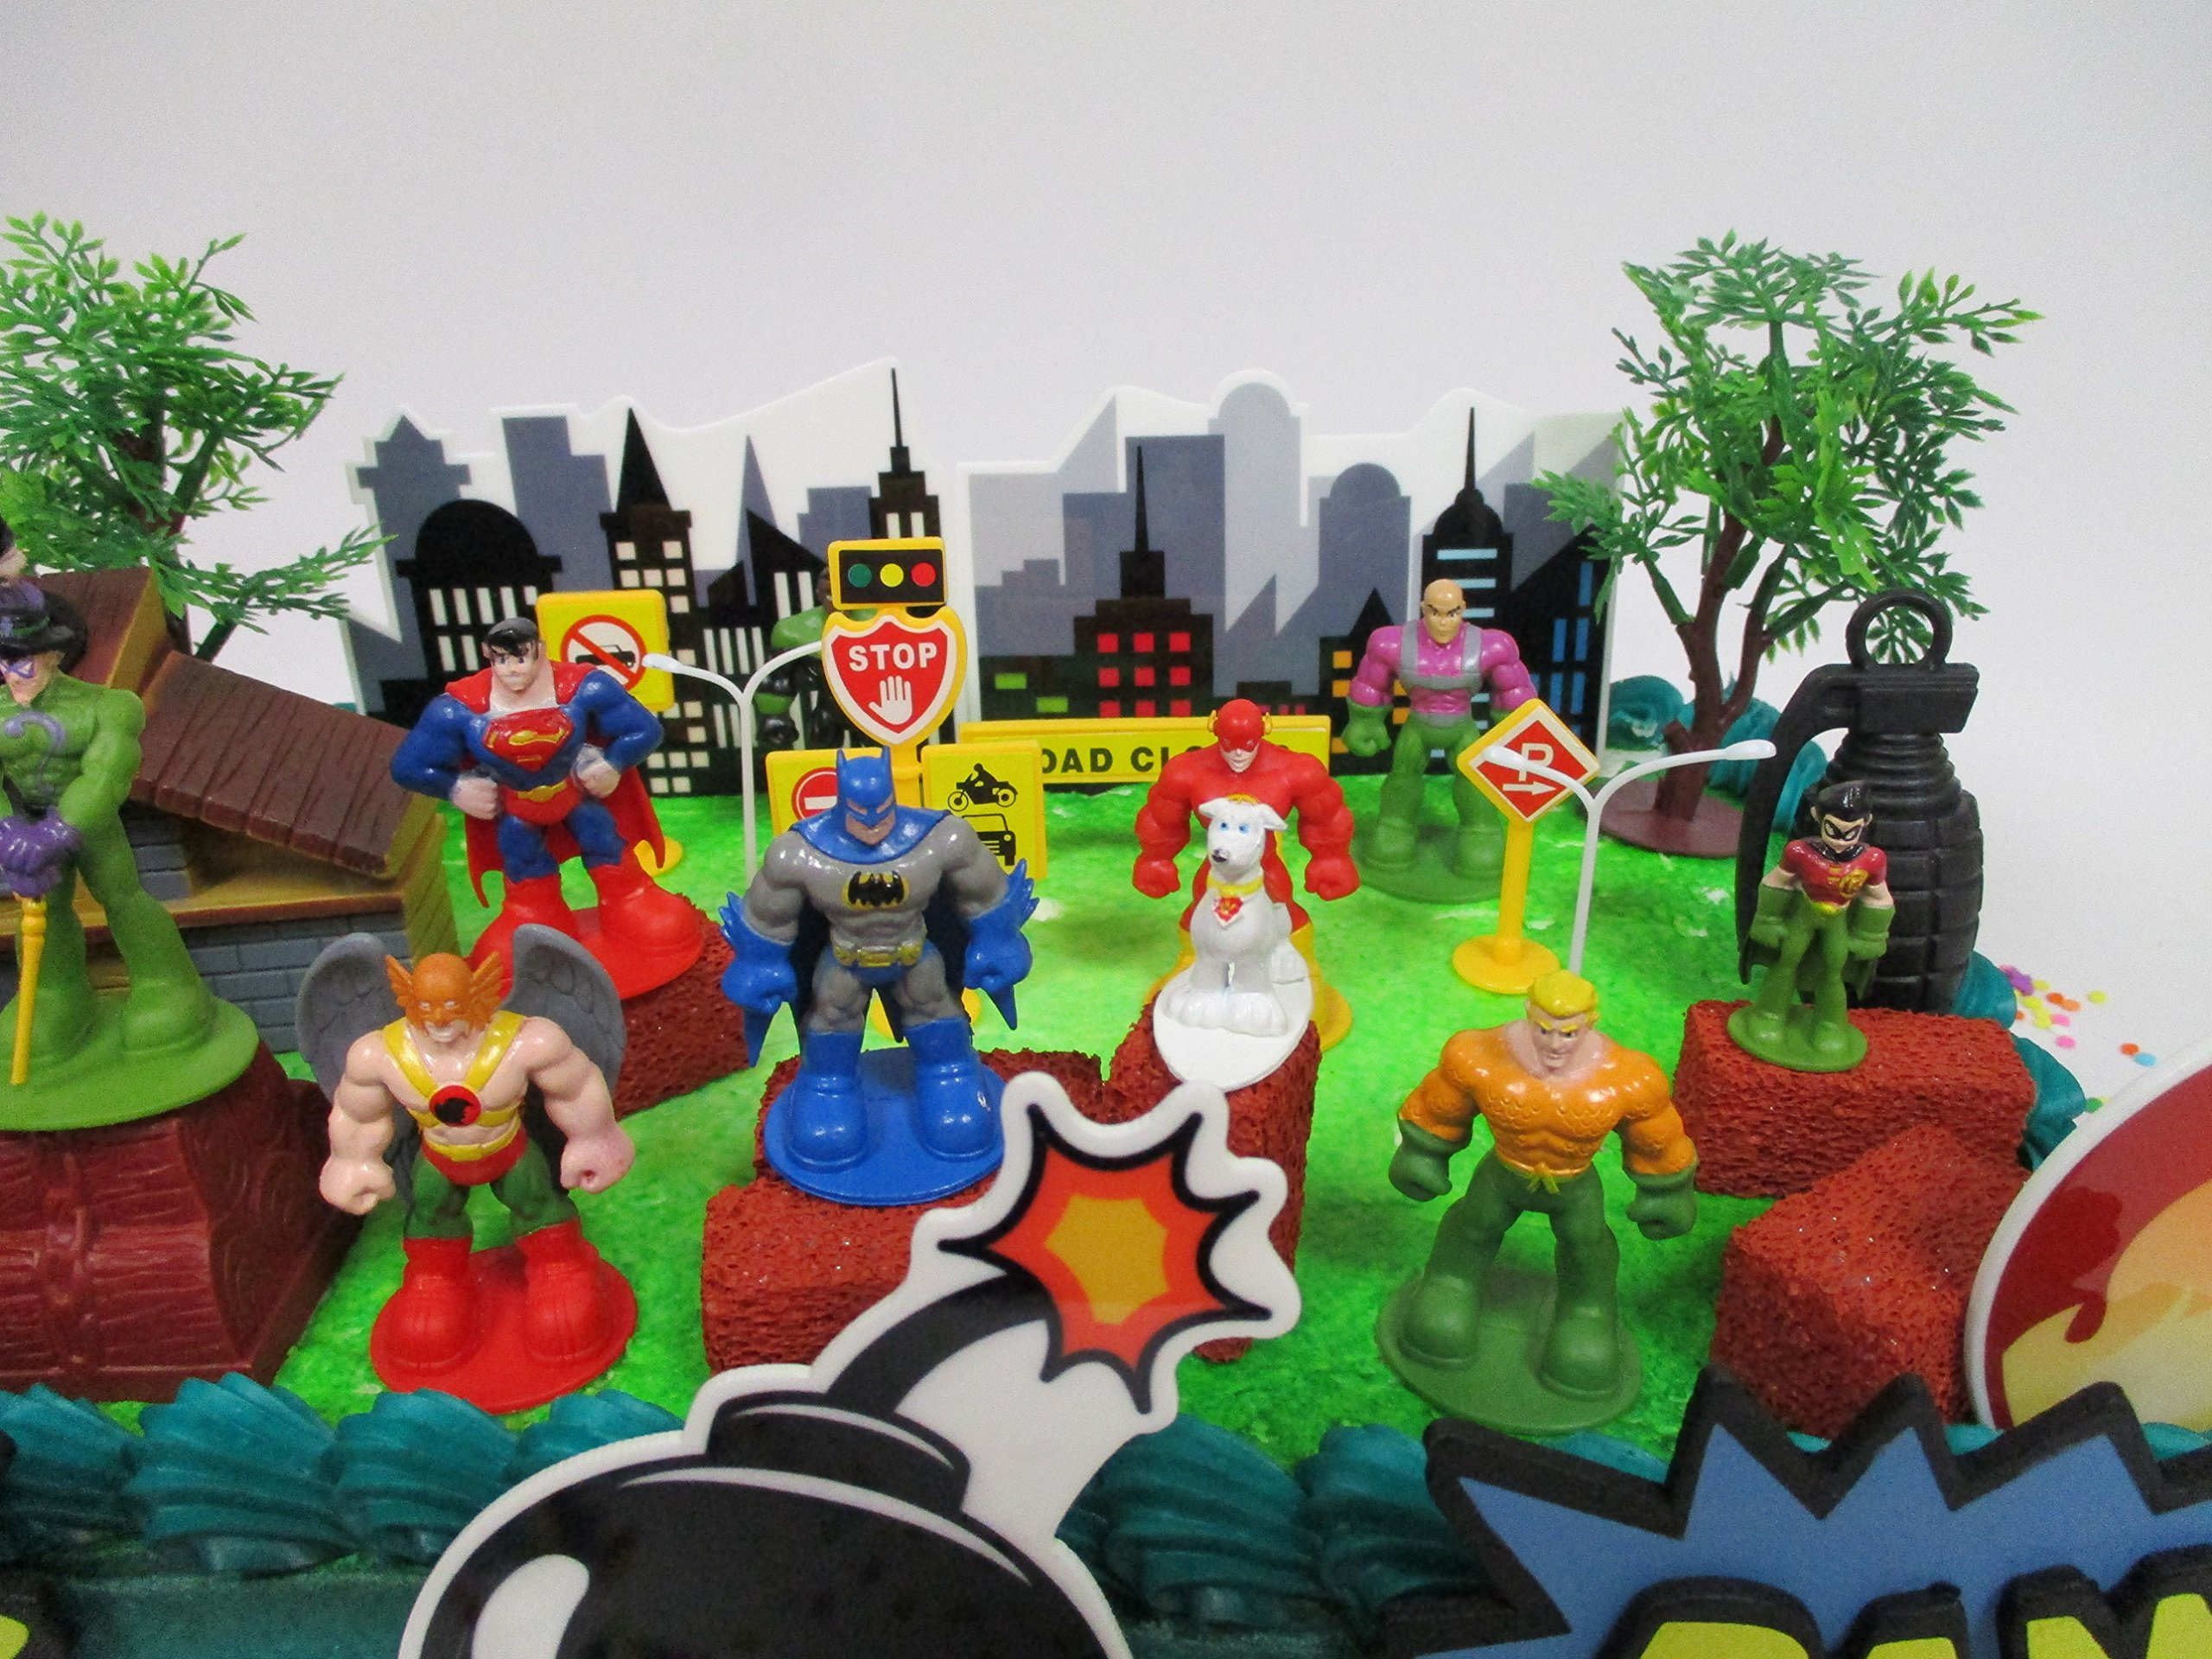 DC Comic Super Friends Birthday Cake Topper Set Featuring Super Hero Crime Fighters and Villains with Decorative Accessories by Kitoo (Image #5)